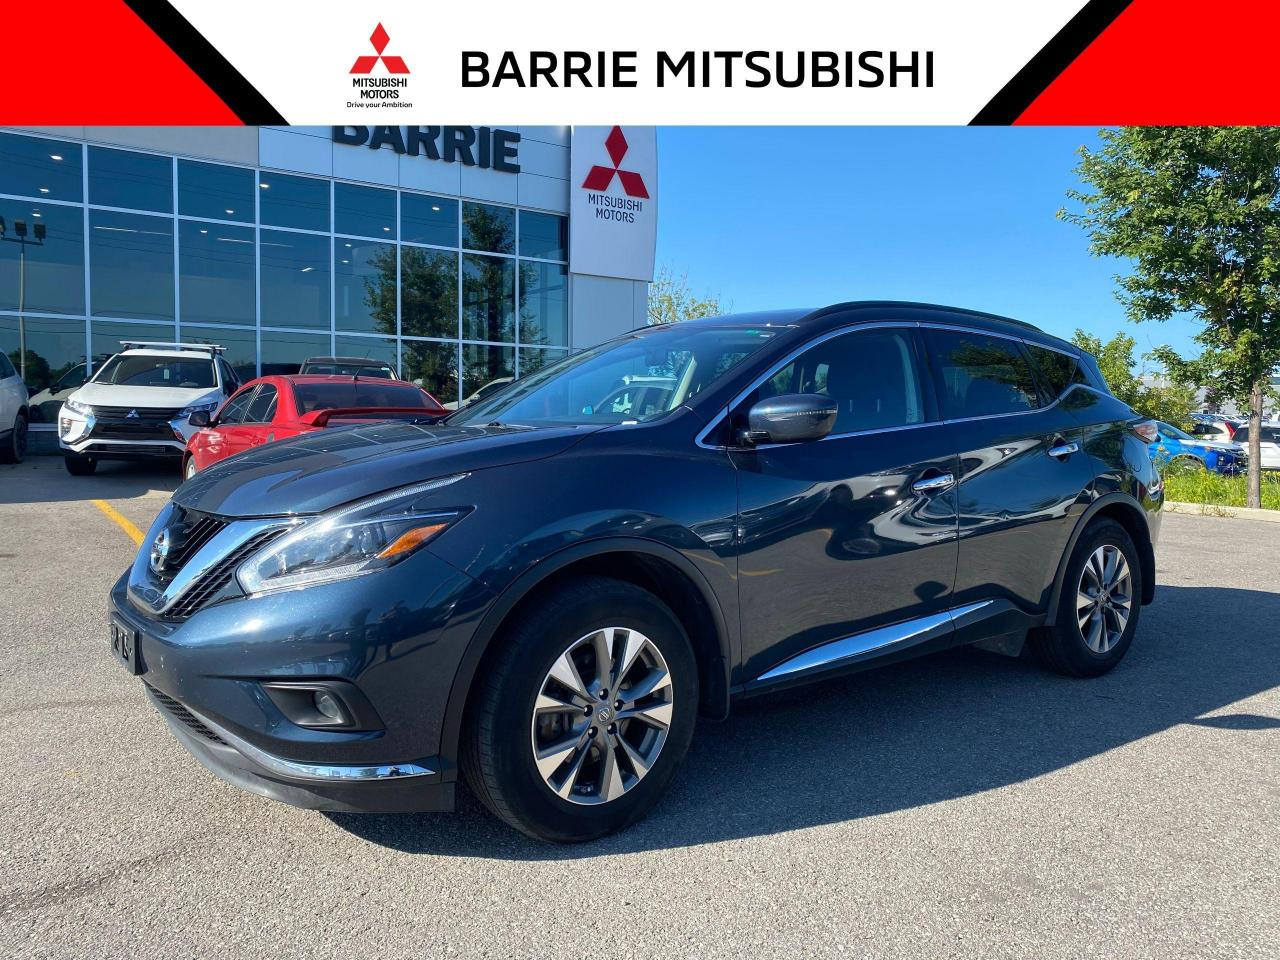 used 2018 nissan murano sv for sale in barrie, ontario carpages.ca